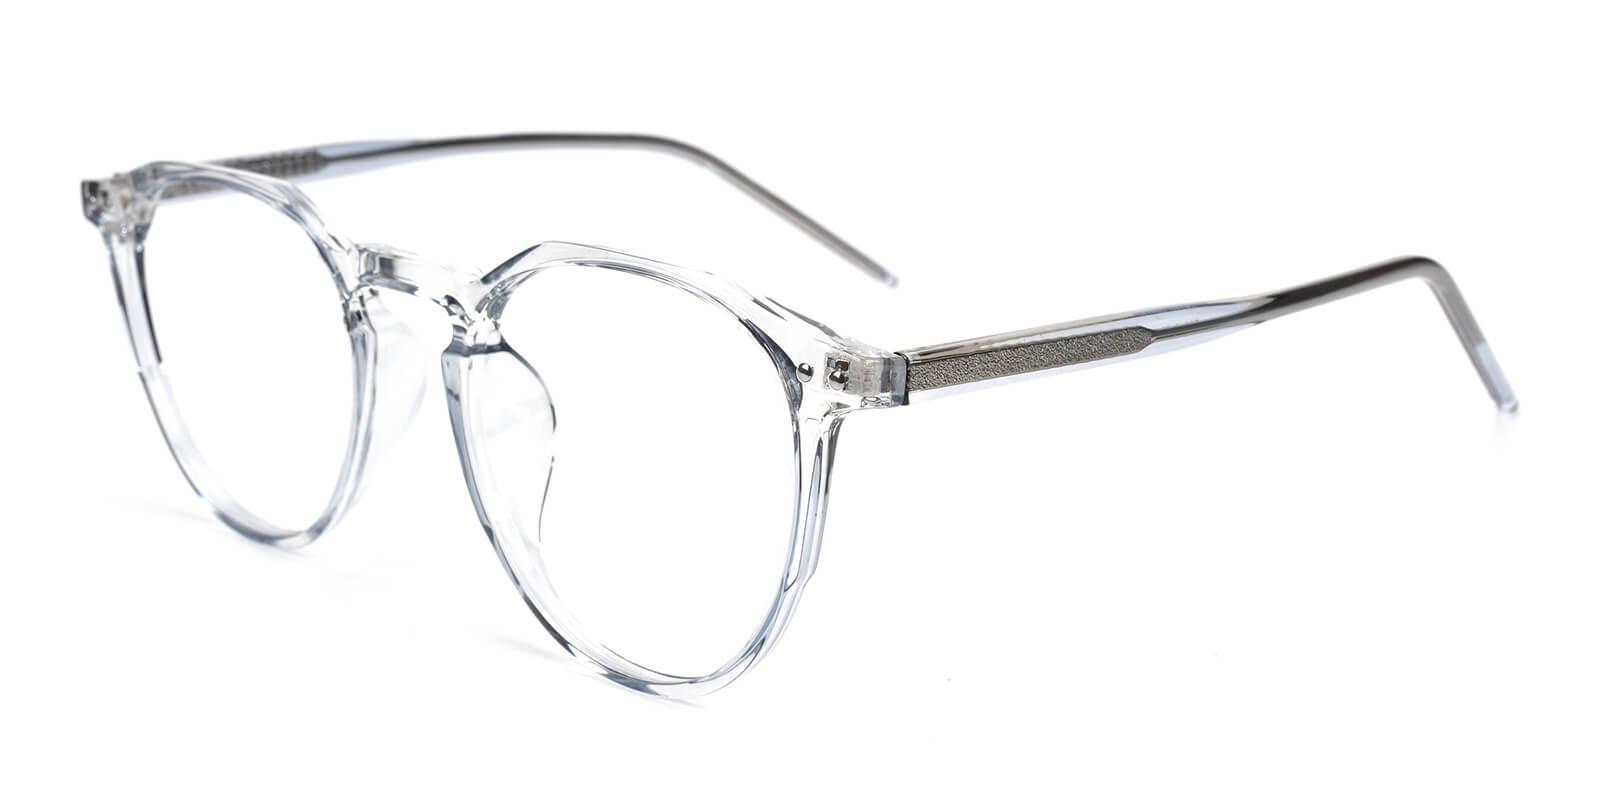 Mariner Gray Acetate Eyeglasses , SpringHinges , UniversalBridgeFit Frames from ABBE Glasses